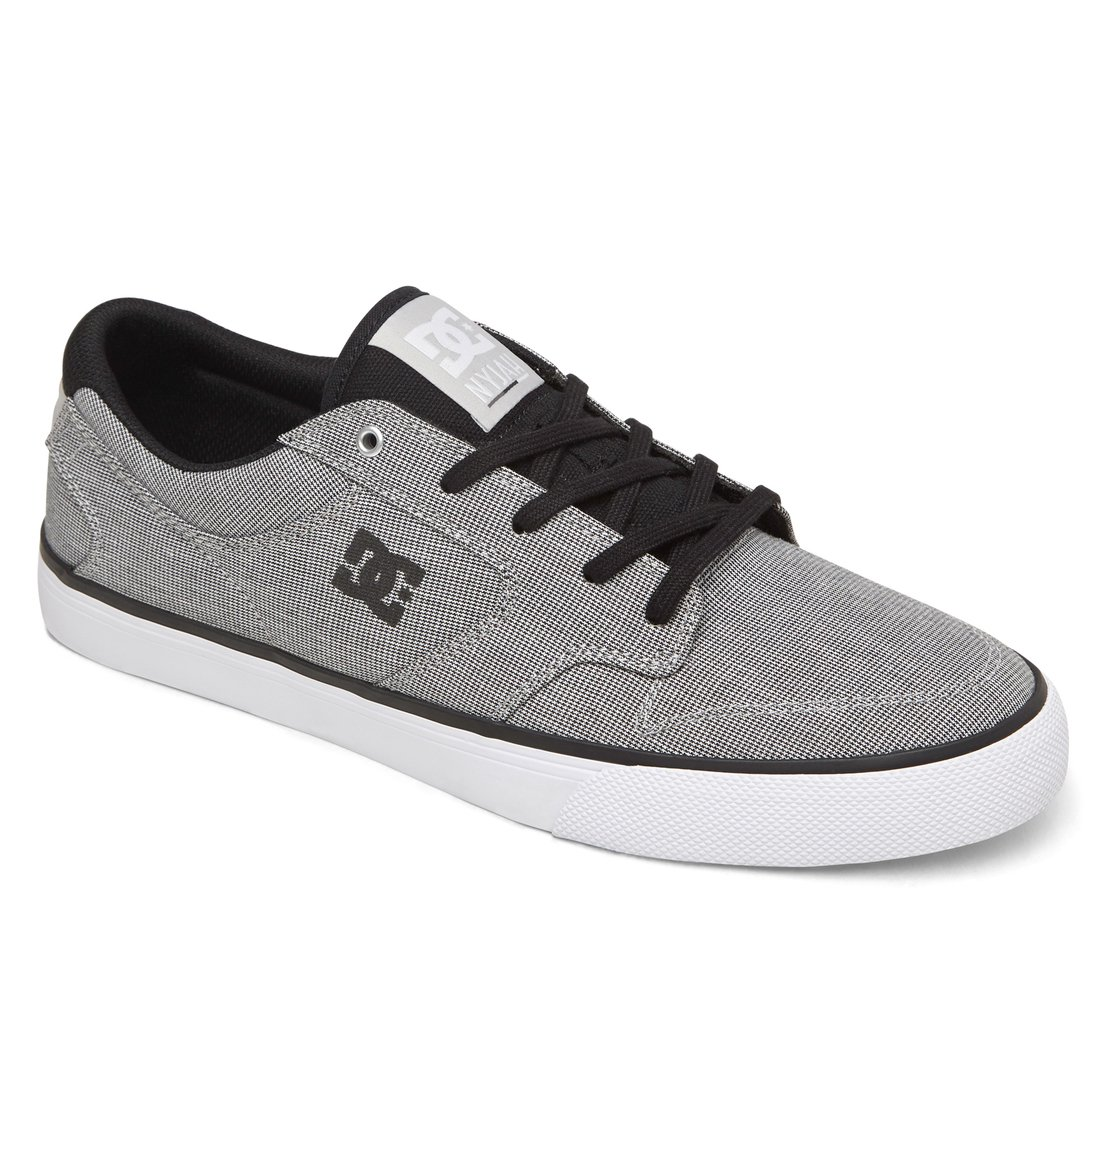 Images of DC Shoes | 1117x1173